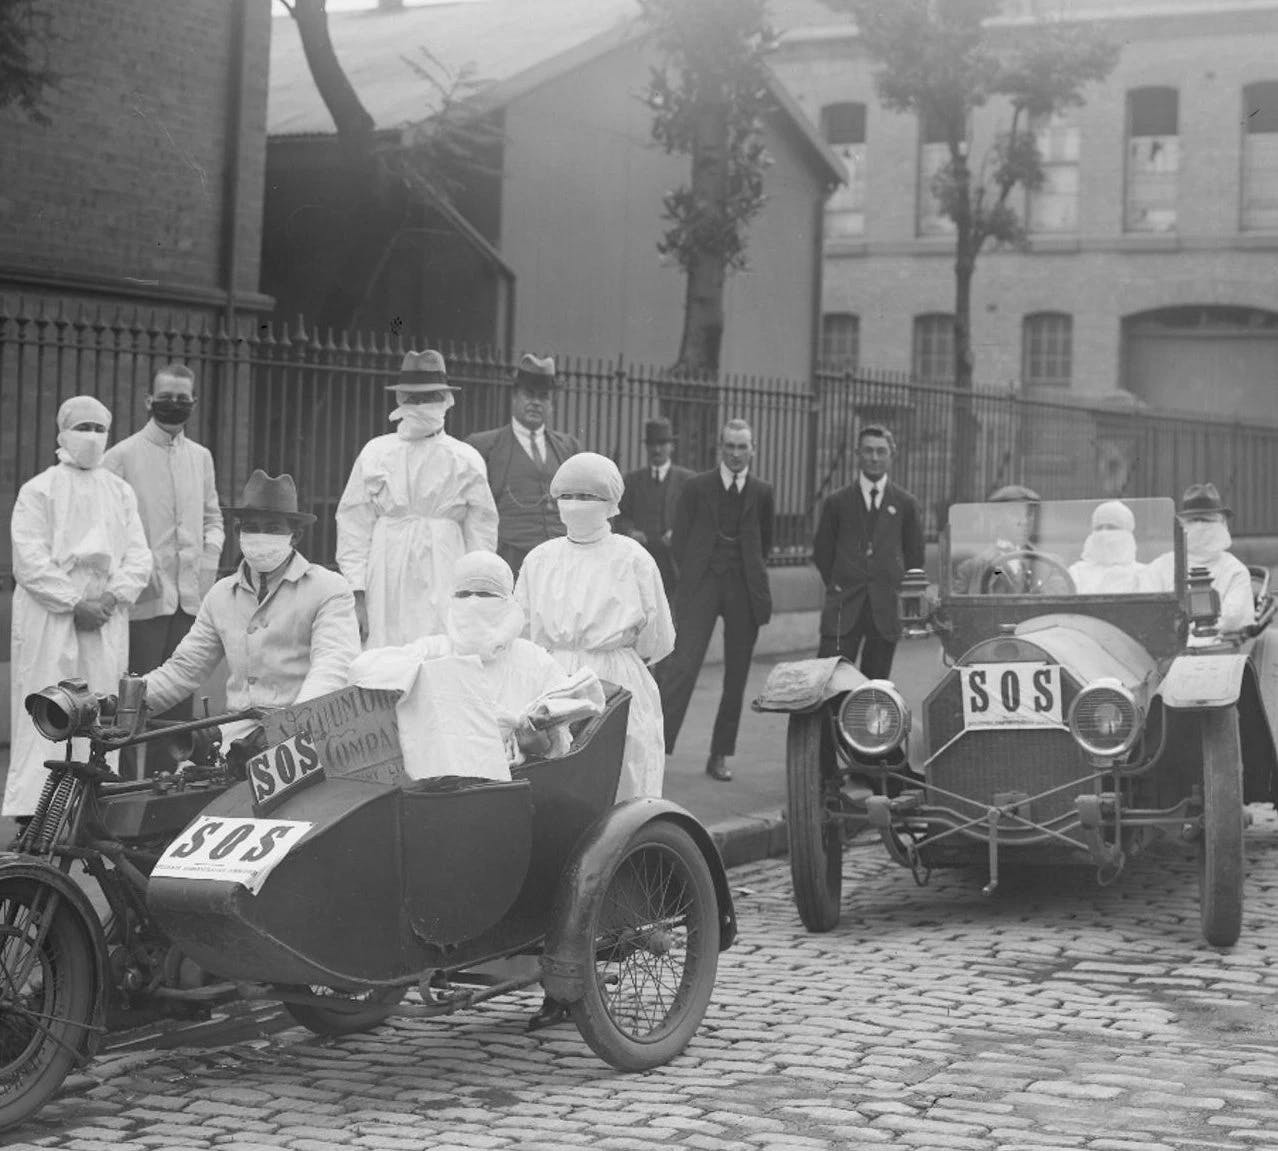 Nurses in Chippendale, New South Wales, Australia. 1919. (Source: The New York Times)